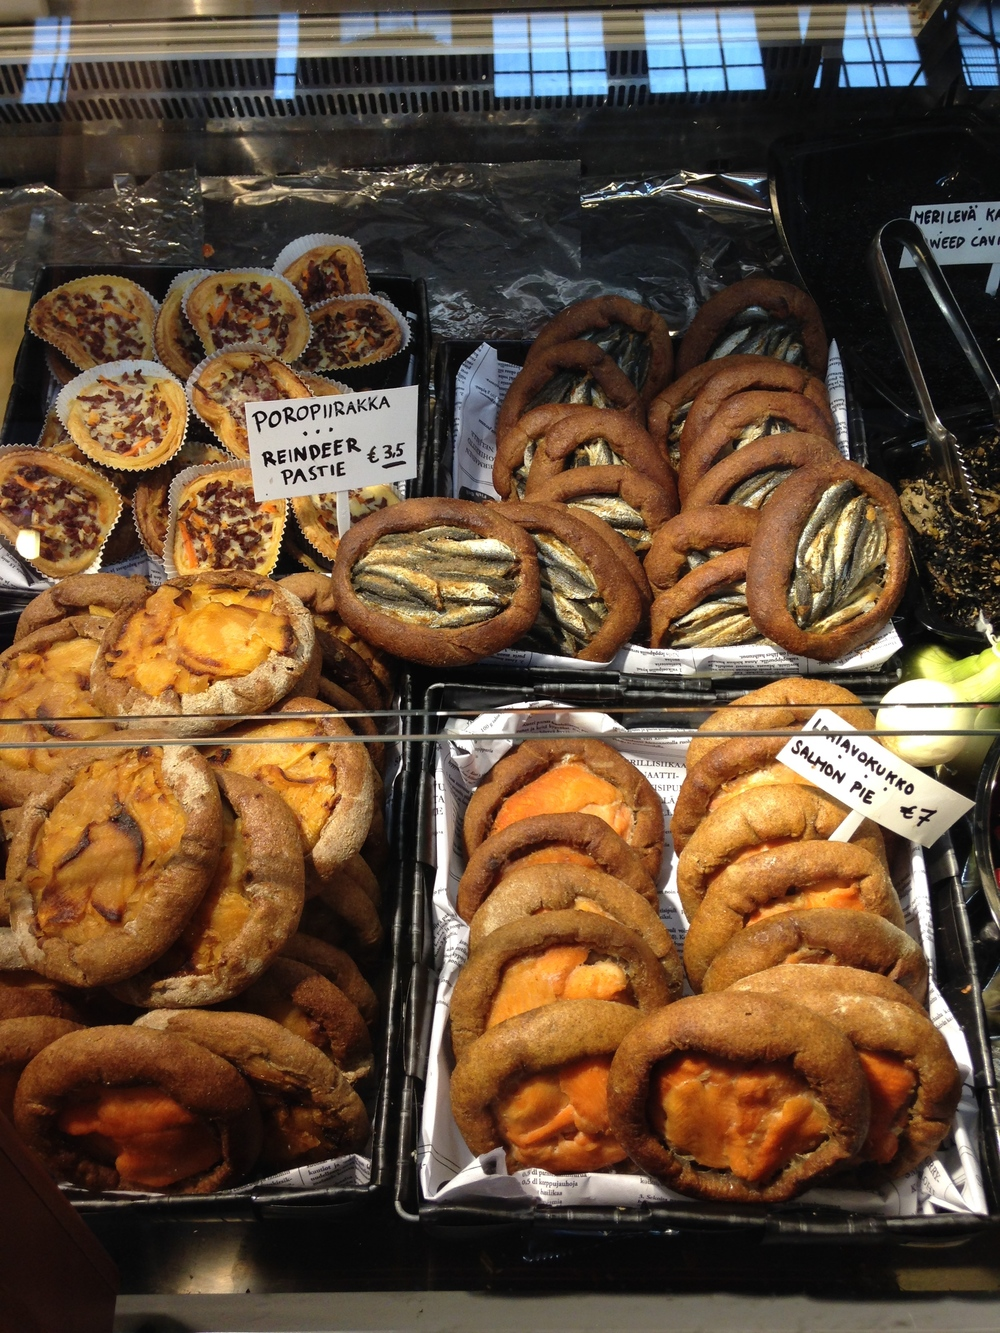 These rye pastries were very popular and had a variety of fillings. Note the reindeer, a common meat option.